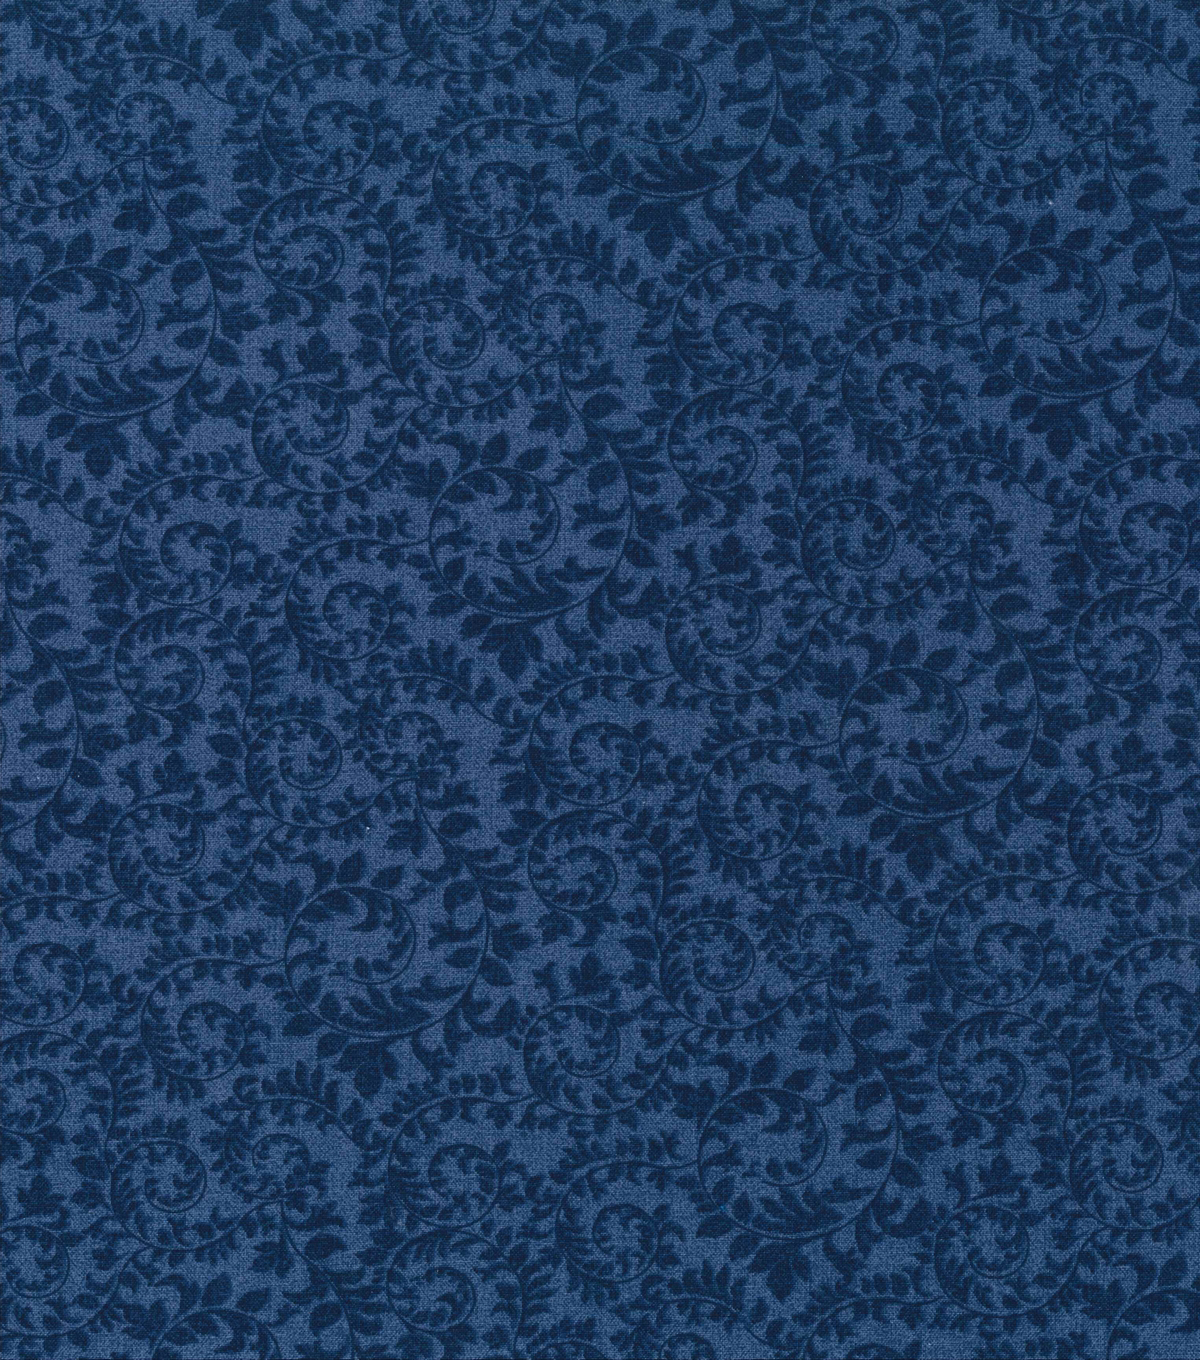 Keepsake Calico Cotton Fabric -Swirling Vines Blue